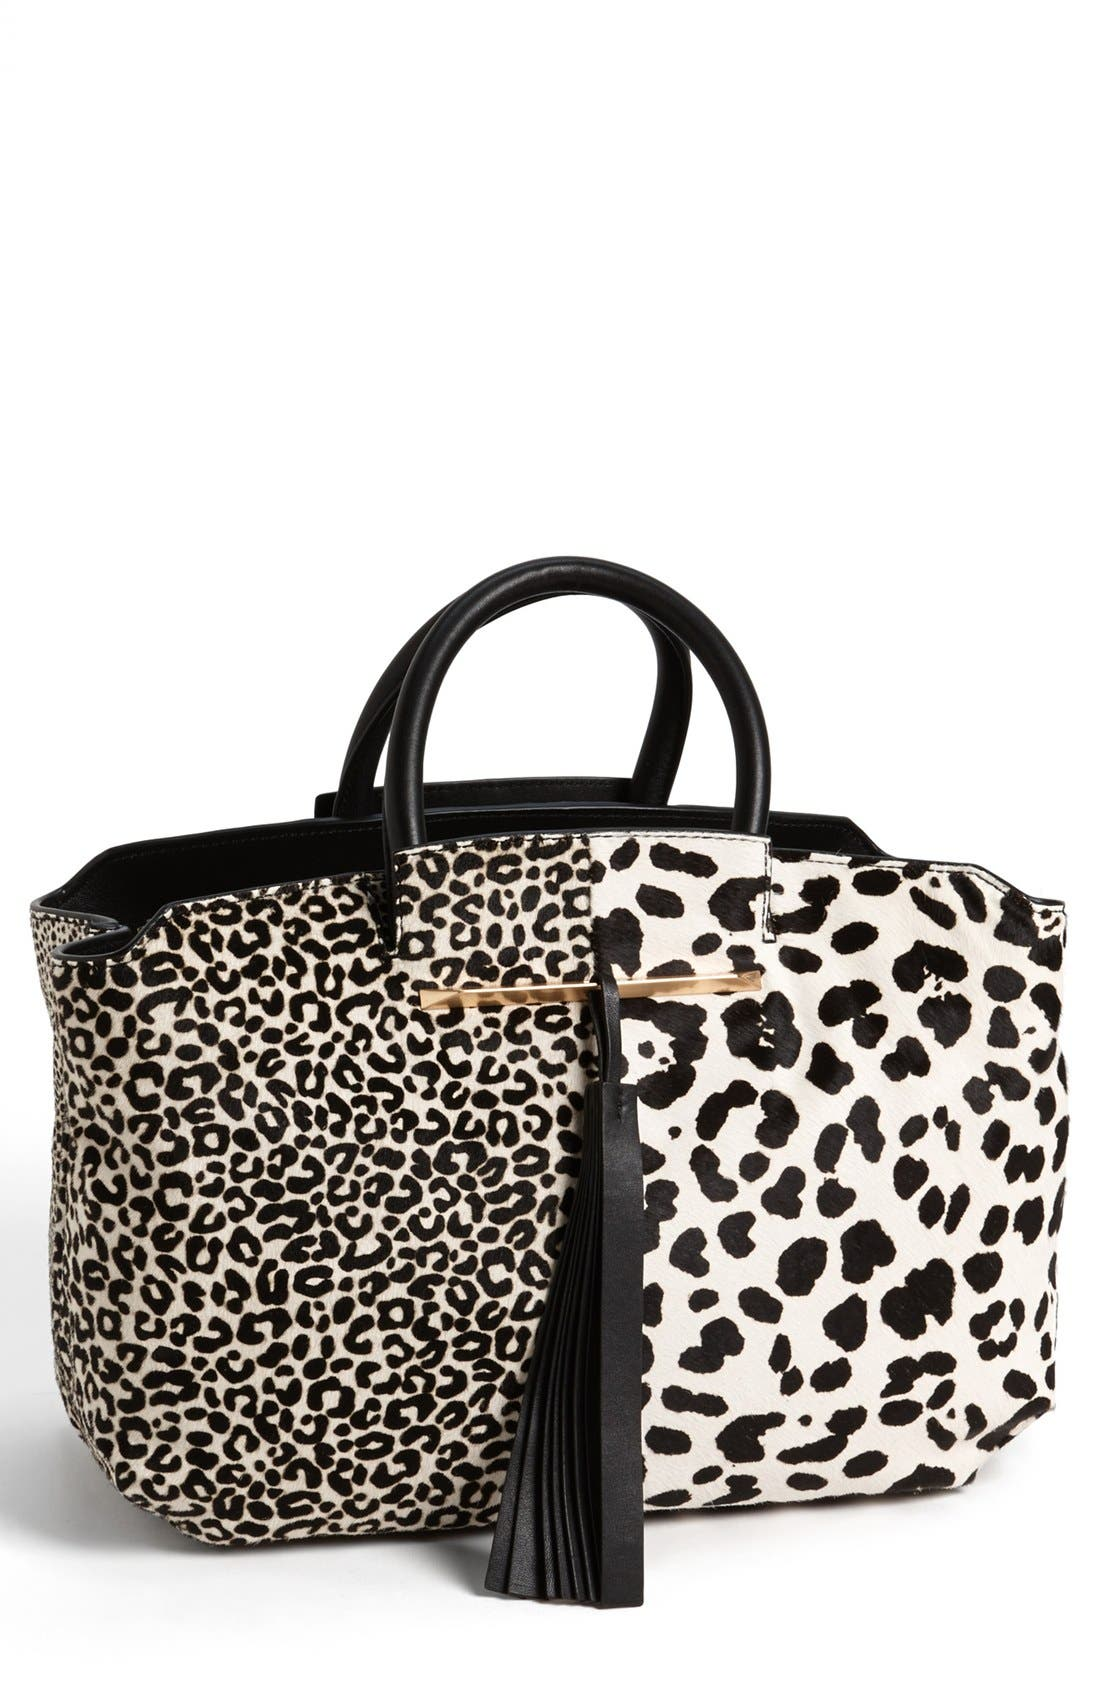 Alternate Image 1 Selected - B Brian Atwood 'Gena' Animal Pattern Calf Hair Tote, Medium